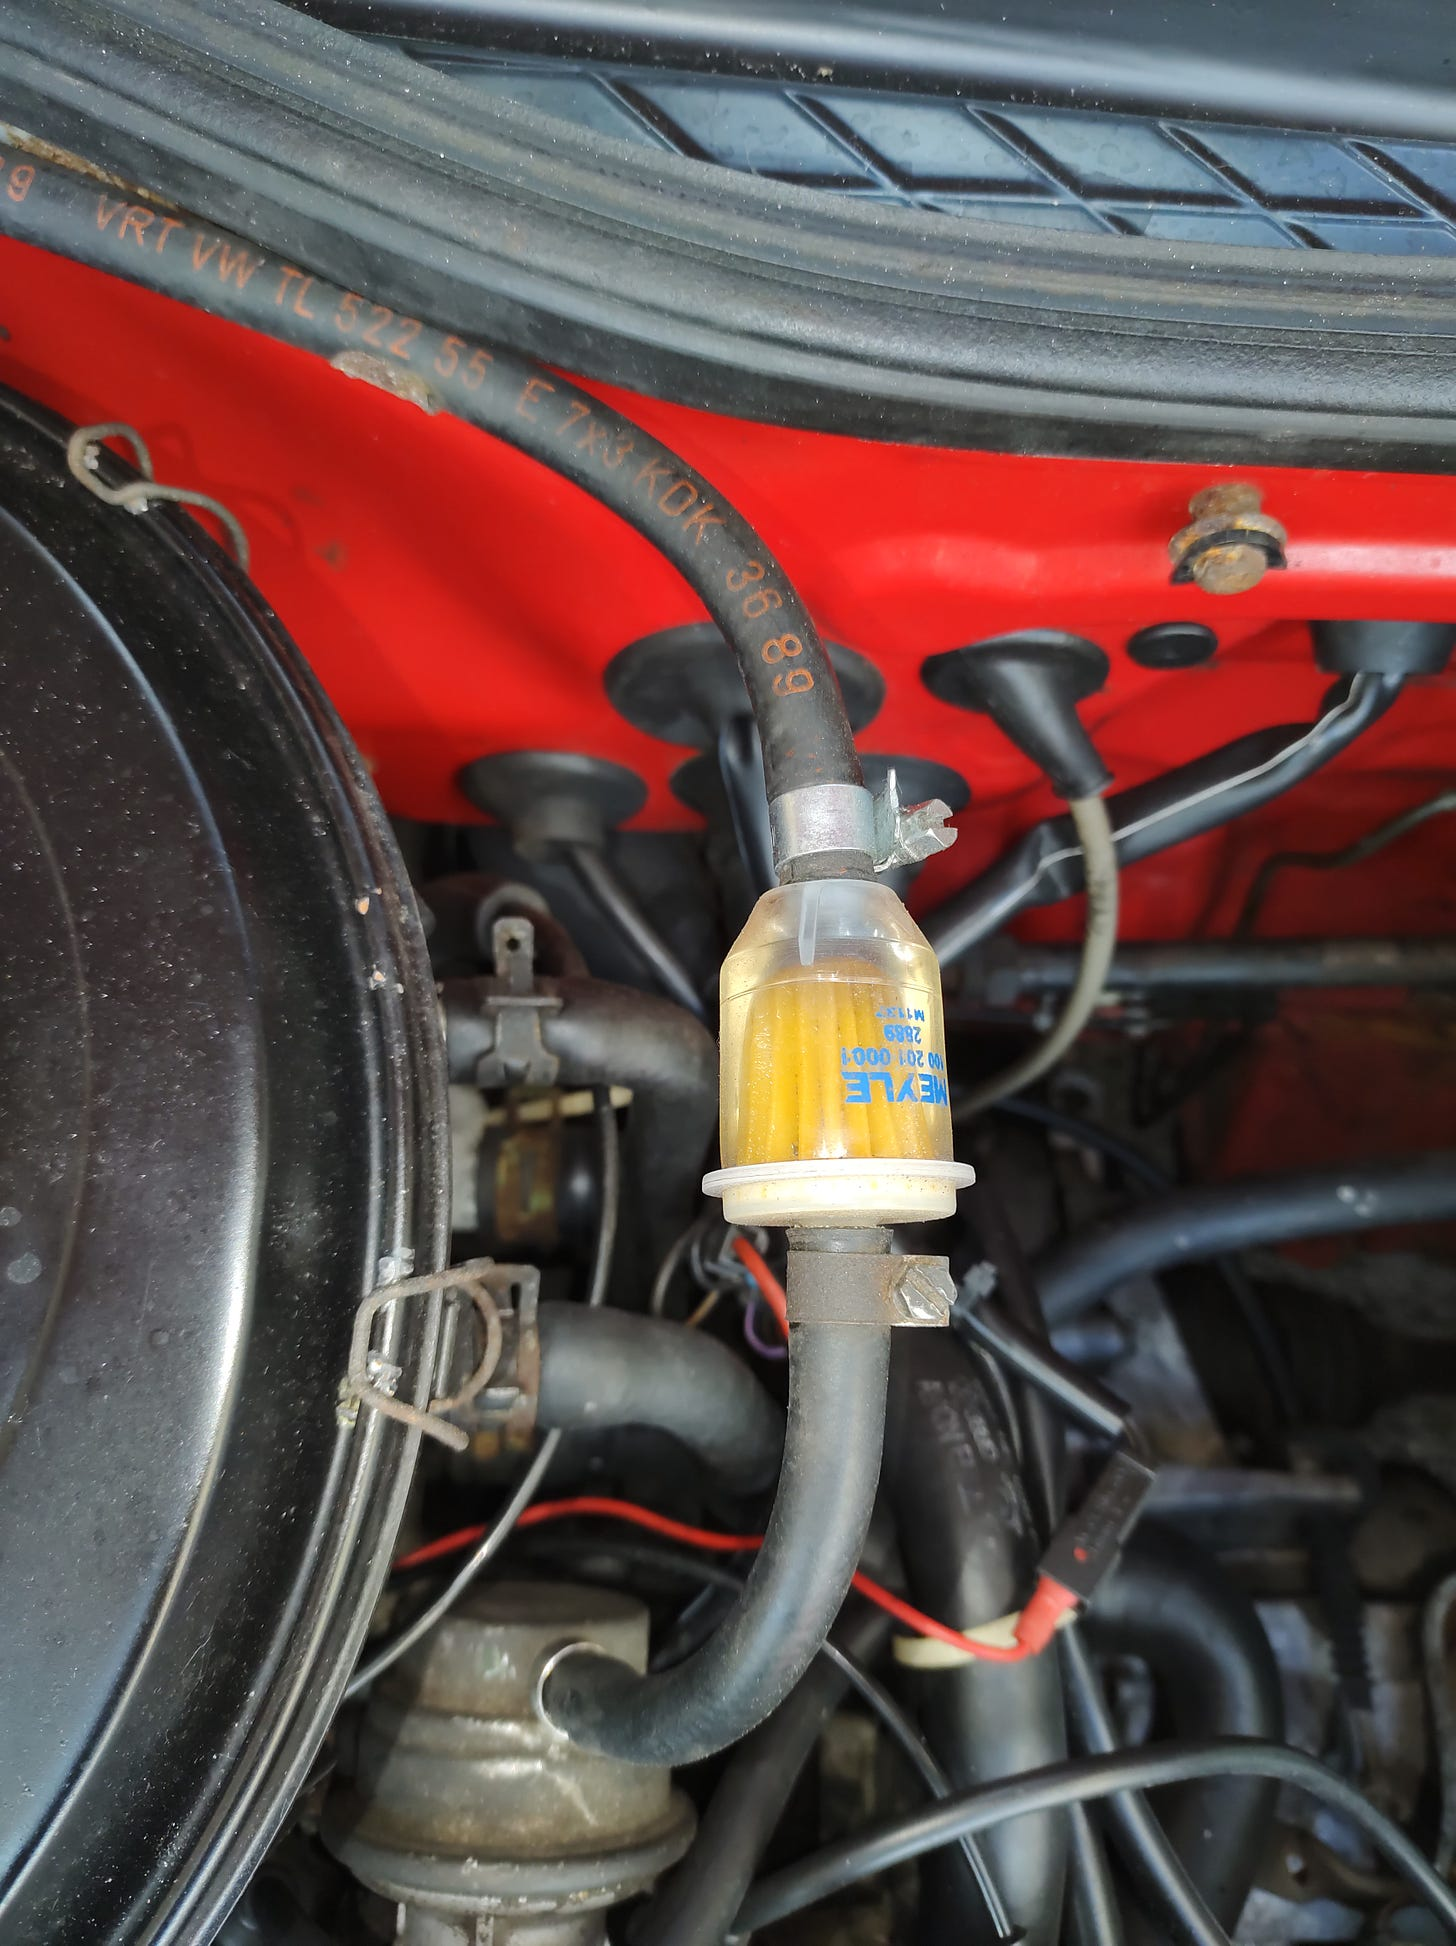 Old 'Mylex' fuel filter with paper element